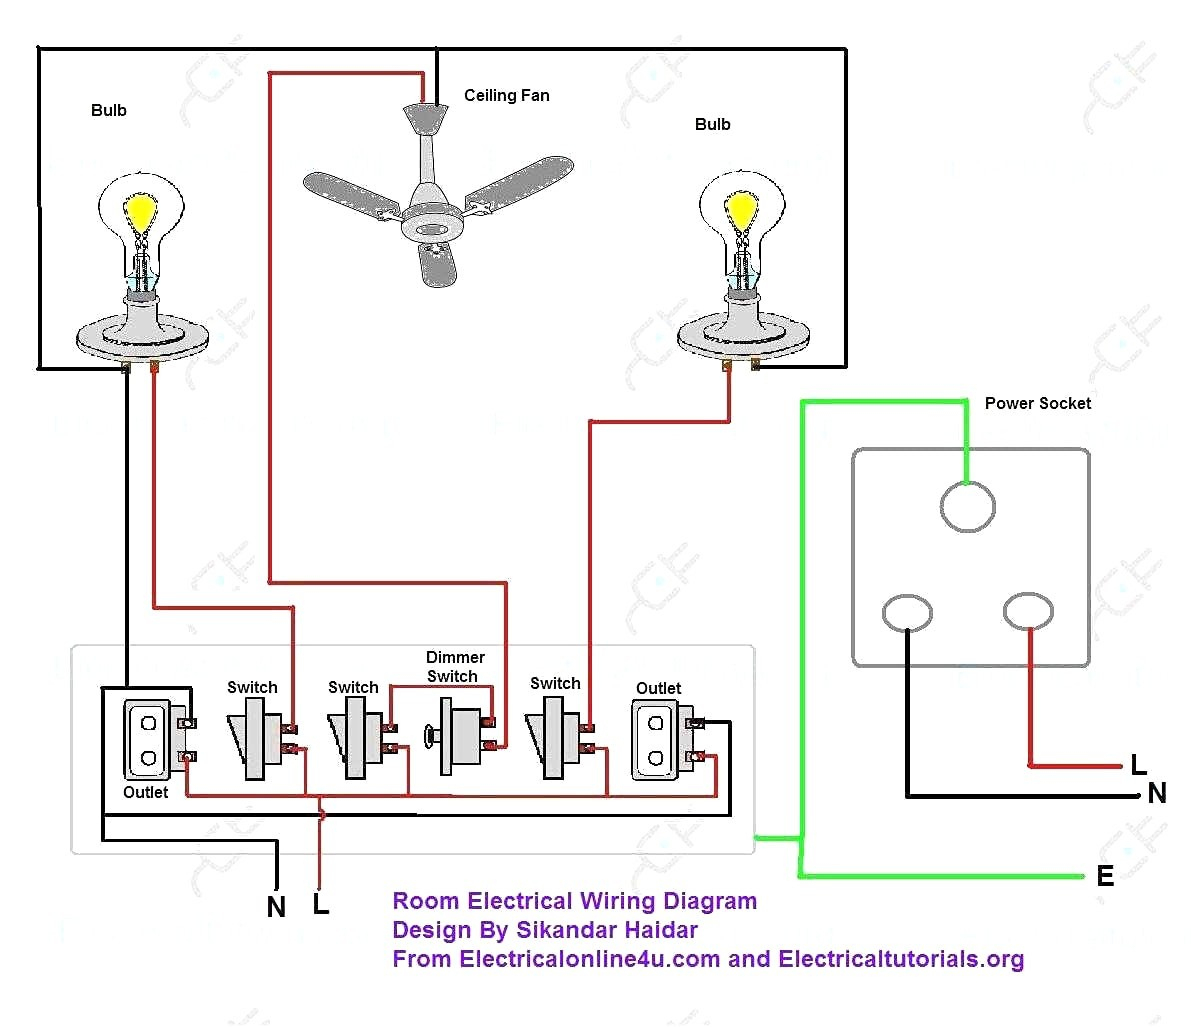 Electrical Wiring Diagram Room - Wiring Diagrams Hubs - House Wiring Diagram